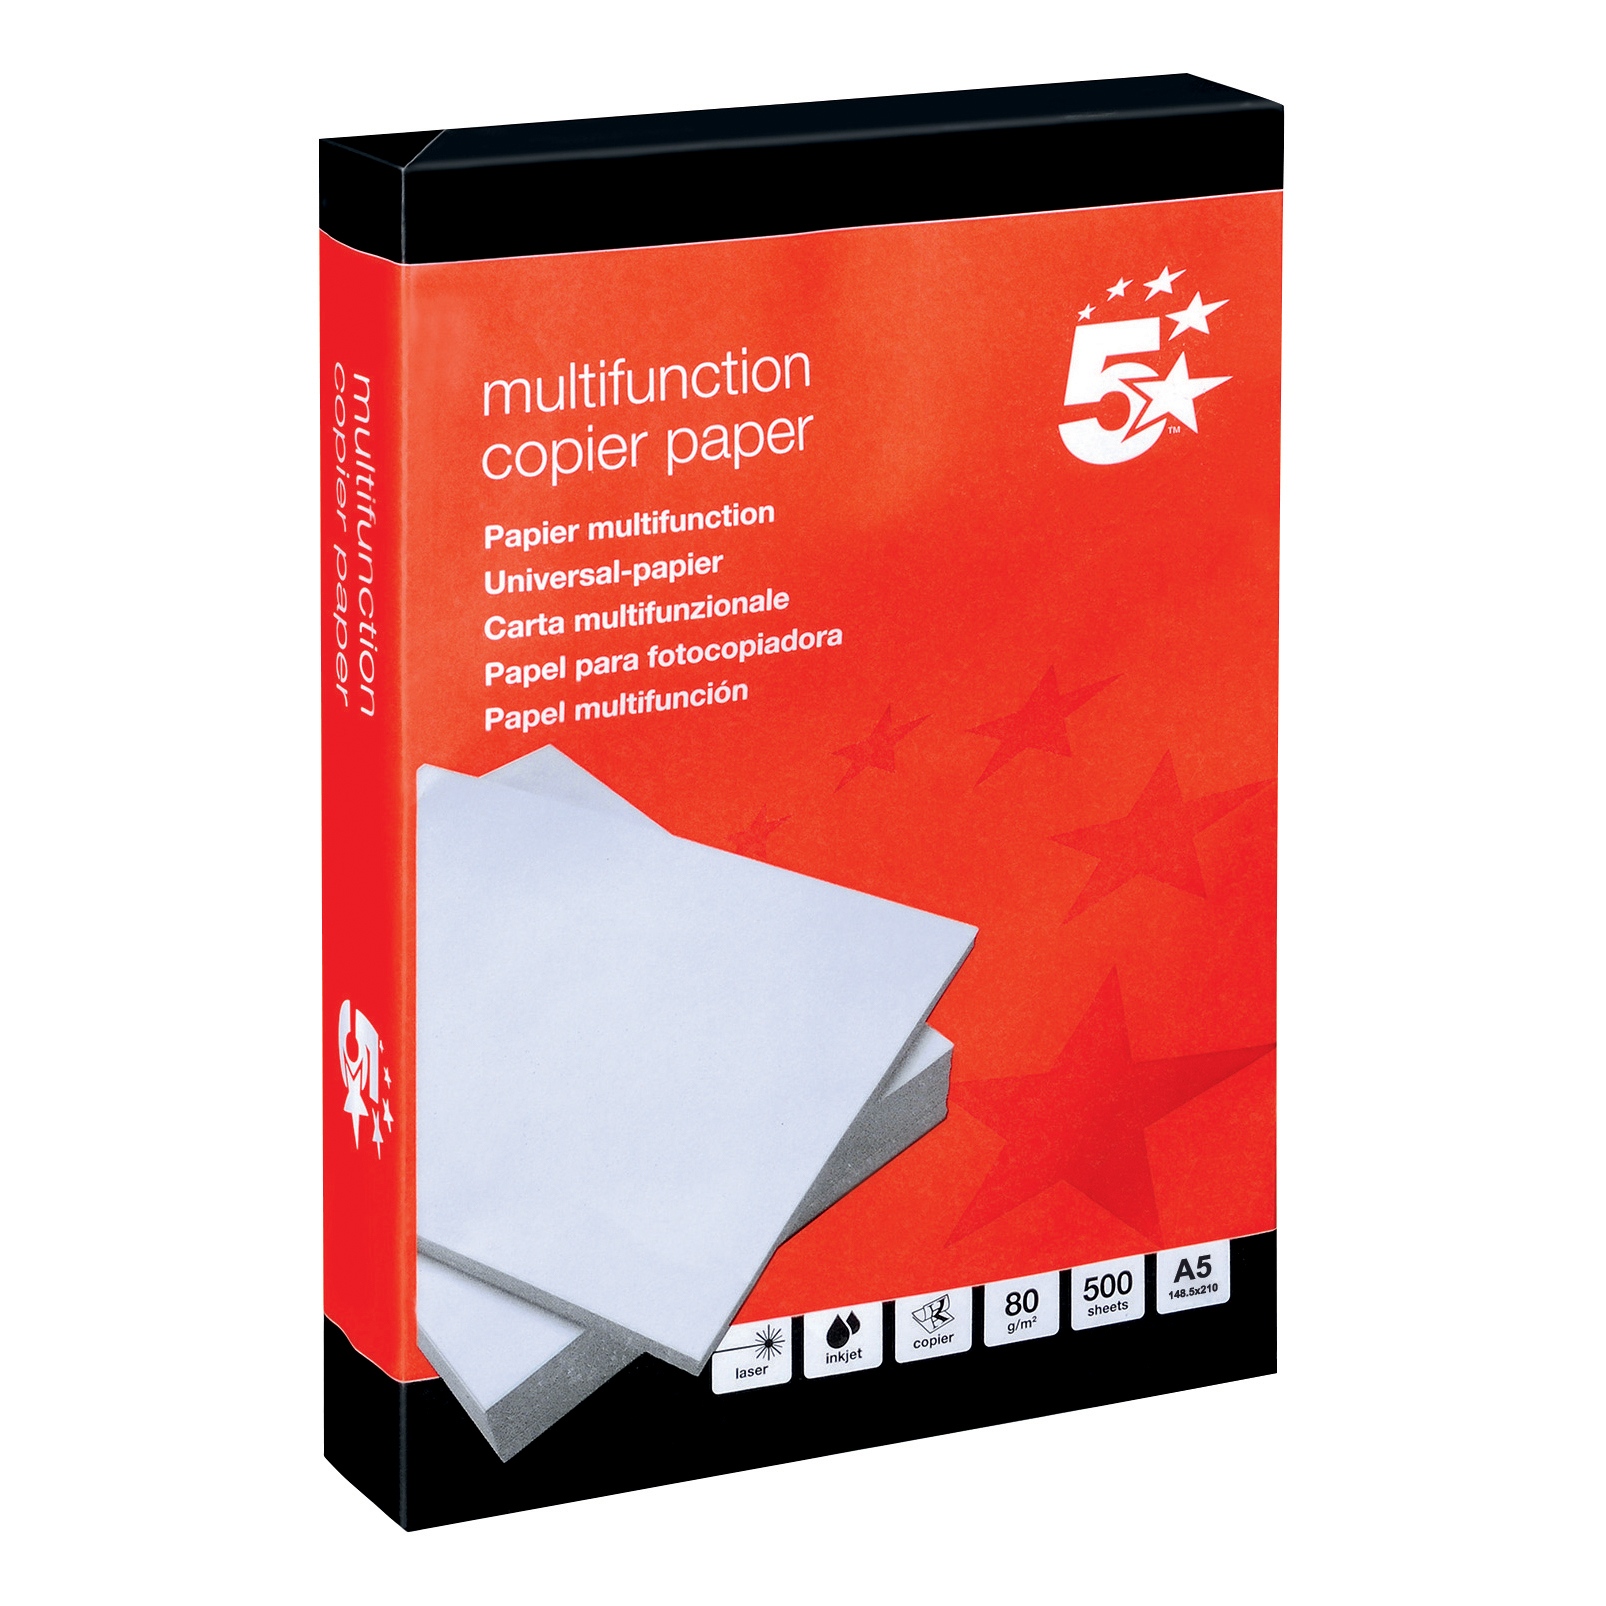 5 Star Office Copier Paper Multifunctional Ream-Wrapped 80gsm A5 White [500 Sheets]